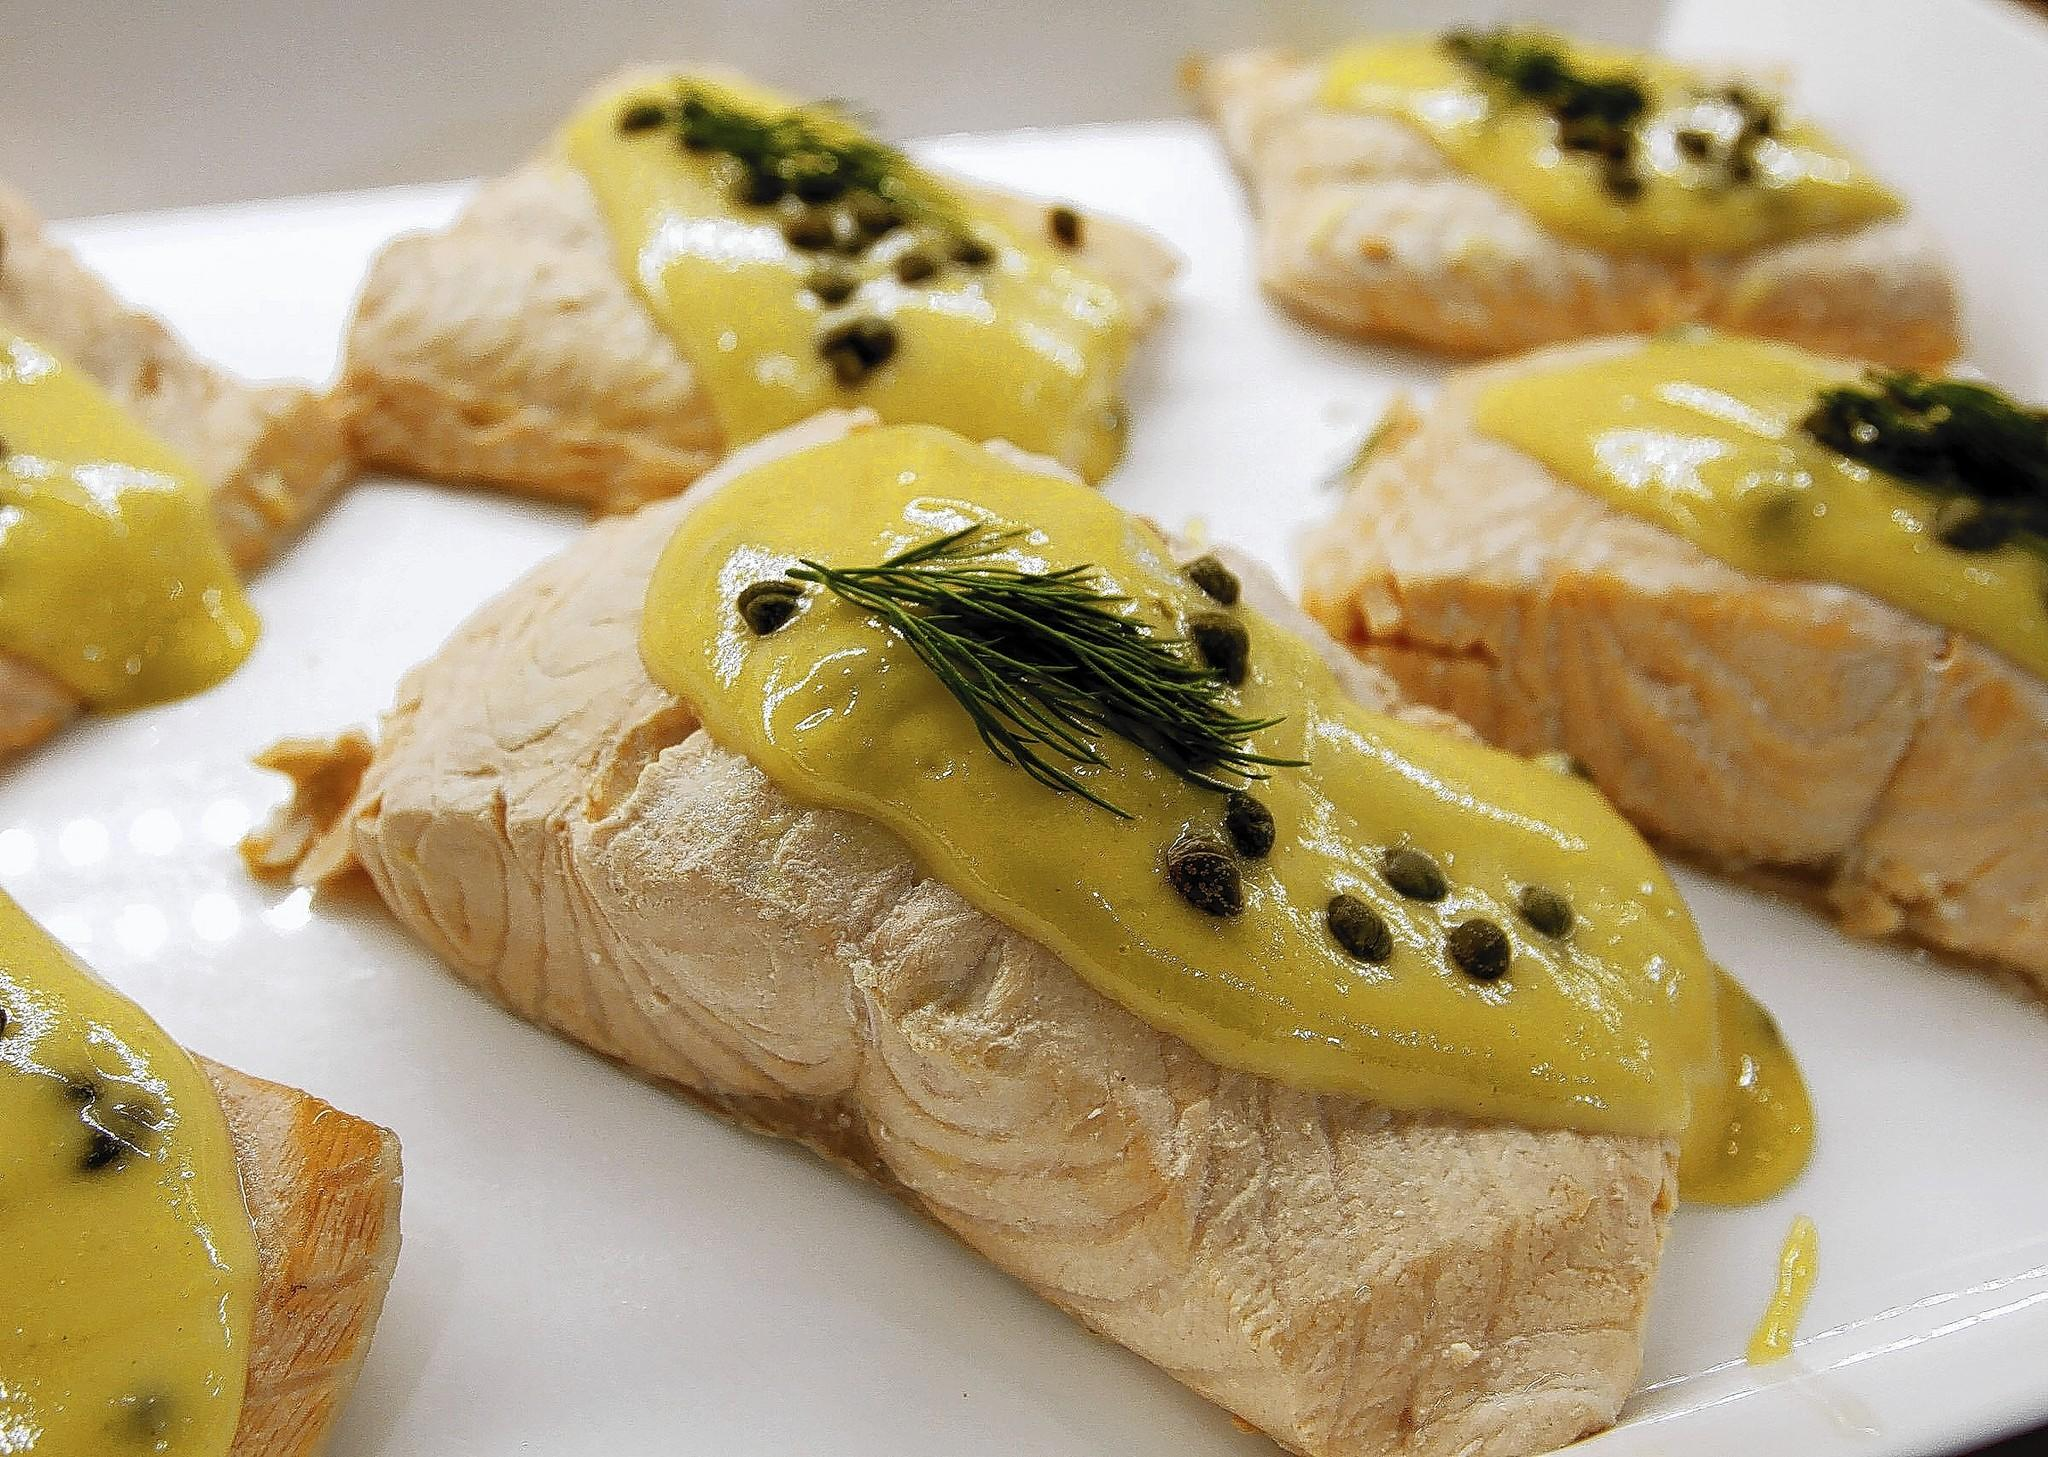 The poached salmon with dijon mustard sauce from Gelson's Market in La Cañada Flintridge on Thursday, April 10, 2014.